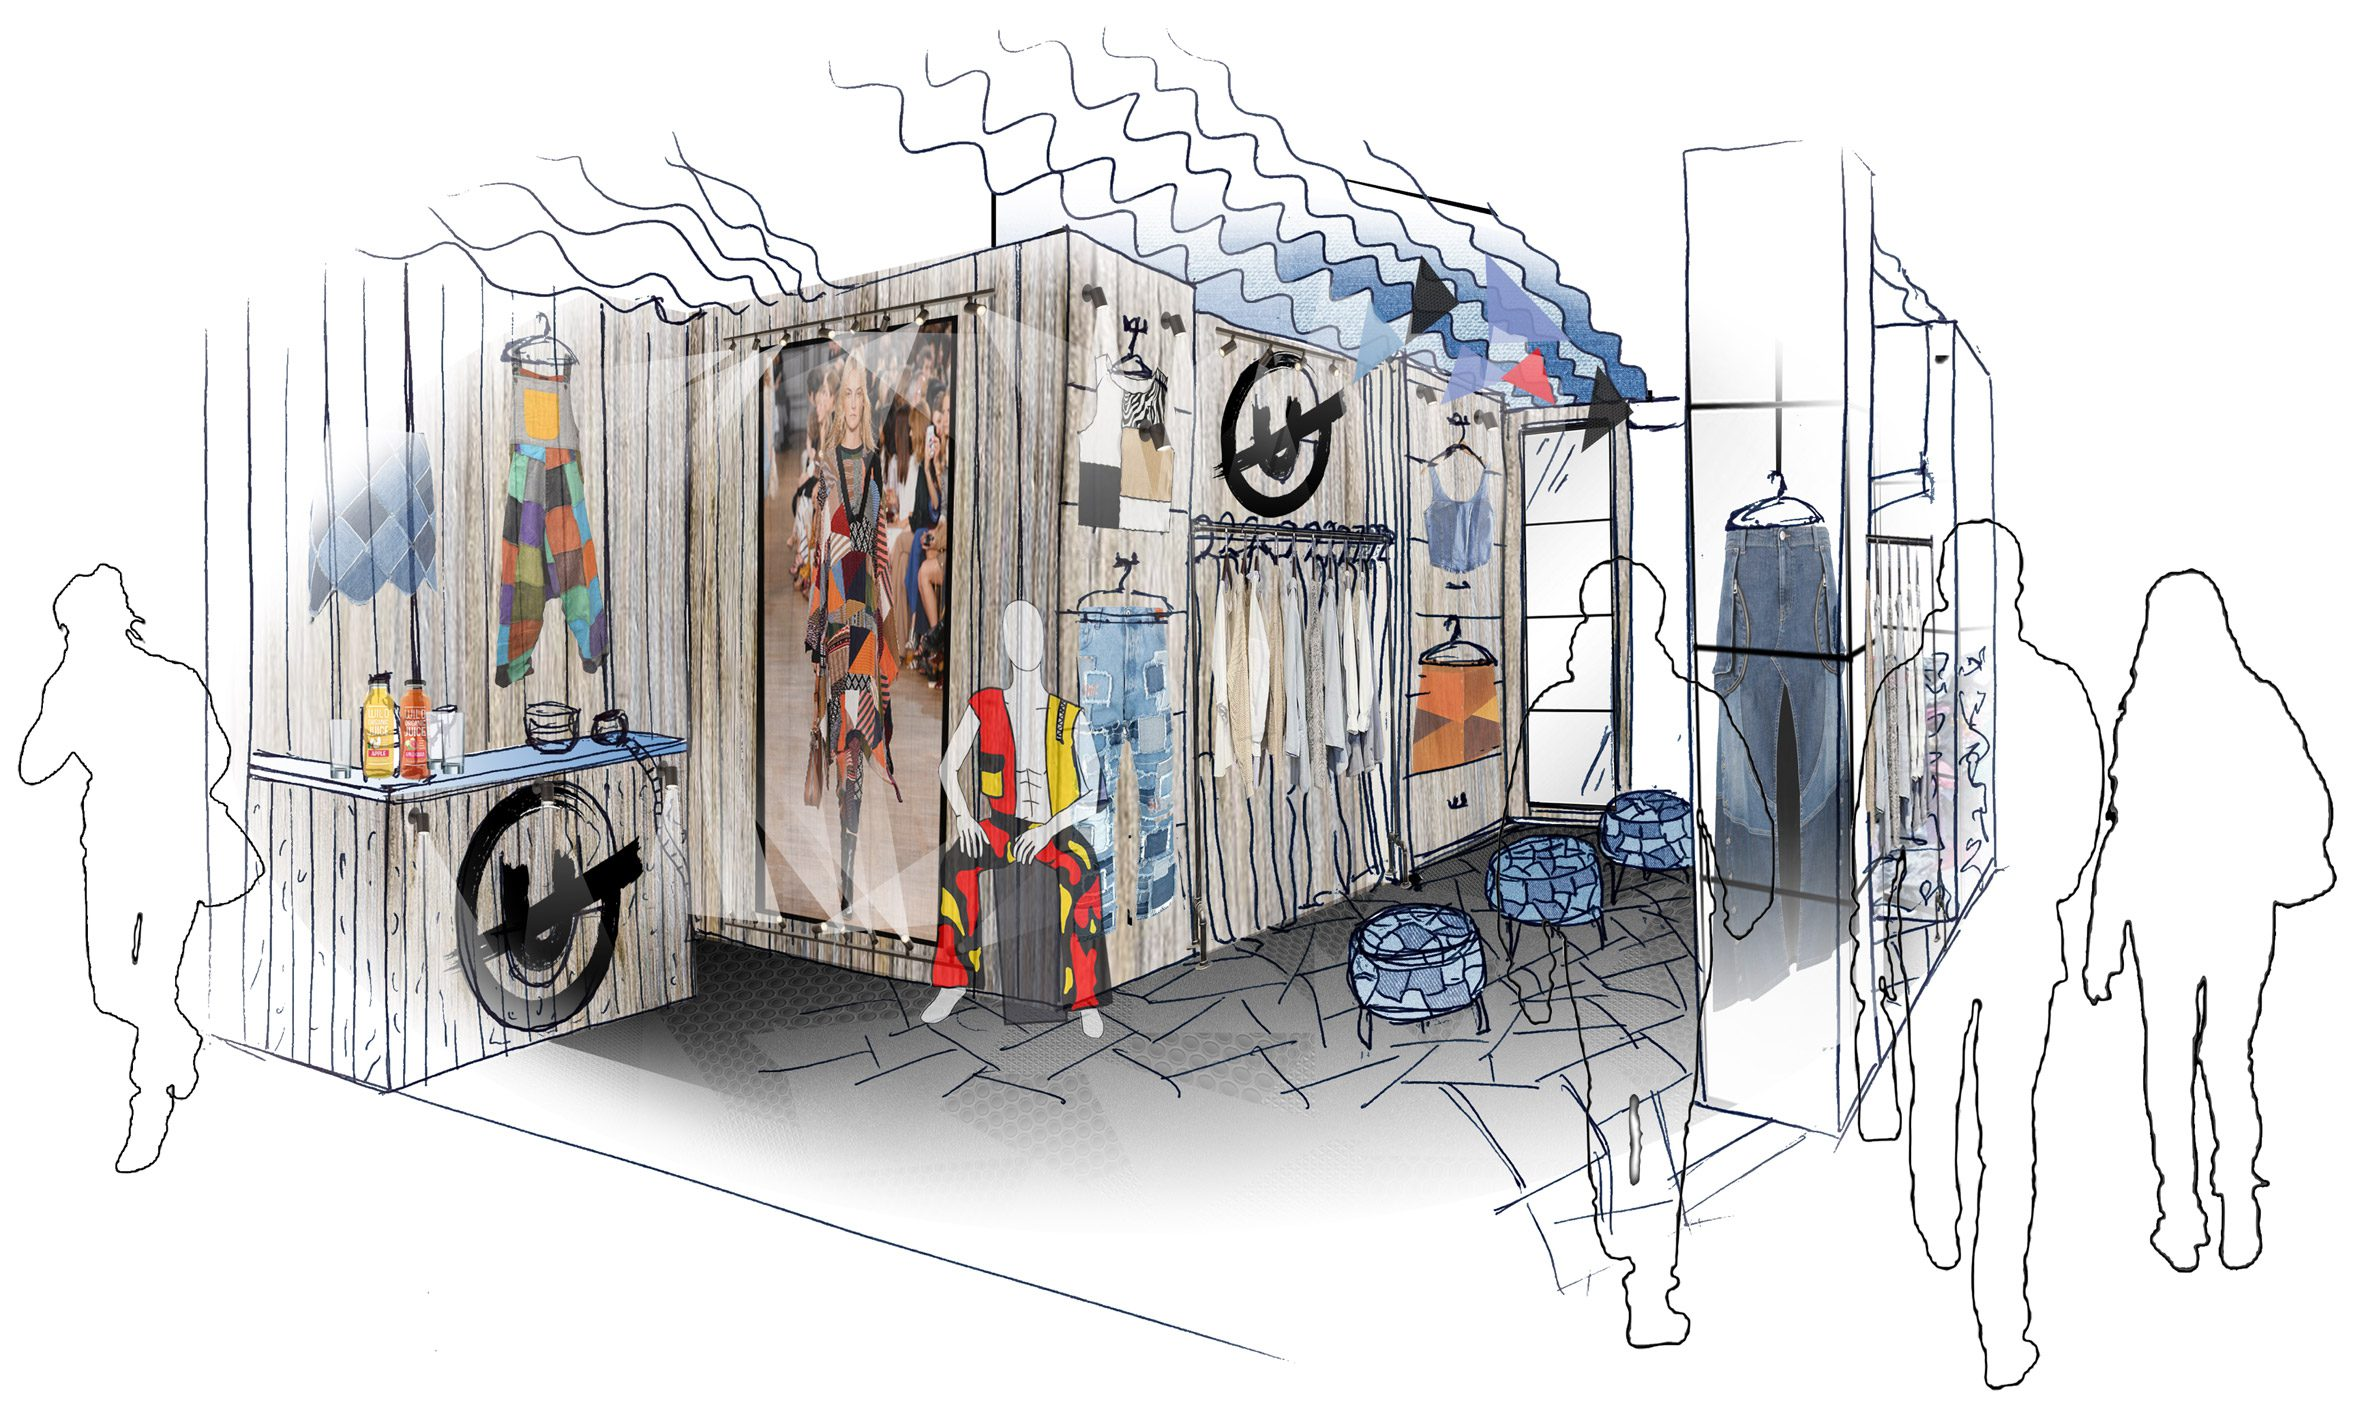 An illustration of a pop-up shop that sells sustainable clothing